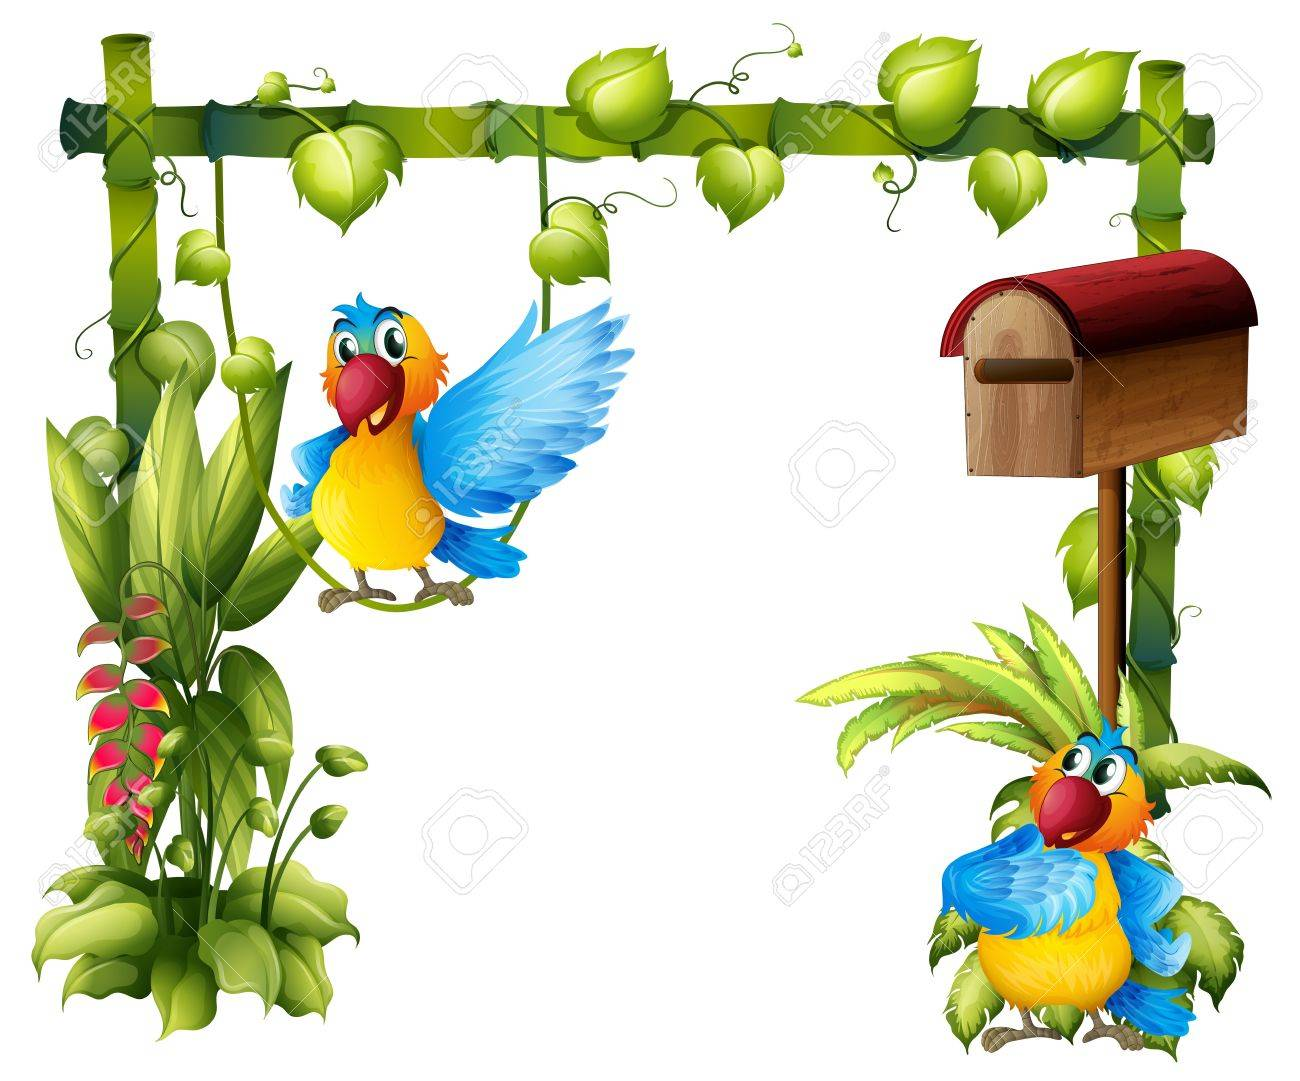 Illustration of two parrots with a wooden mailbox on a white background Stock Vector - 18210415